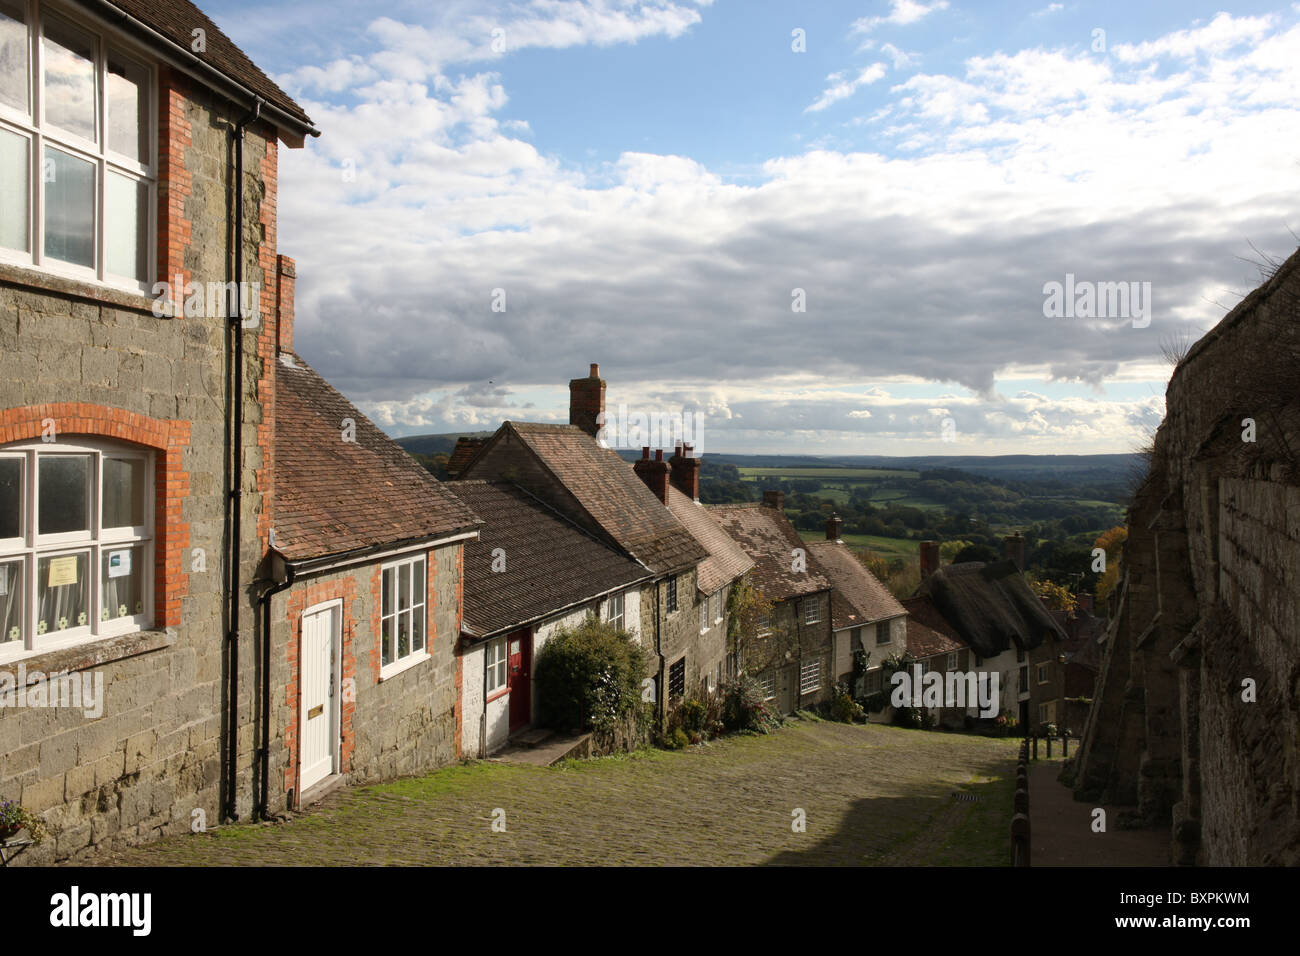 Gold Hill, shaftesbury, dorset. location of Uk 'Hovis' bread T.V. advert. - Stock Image